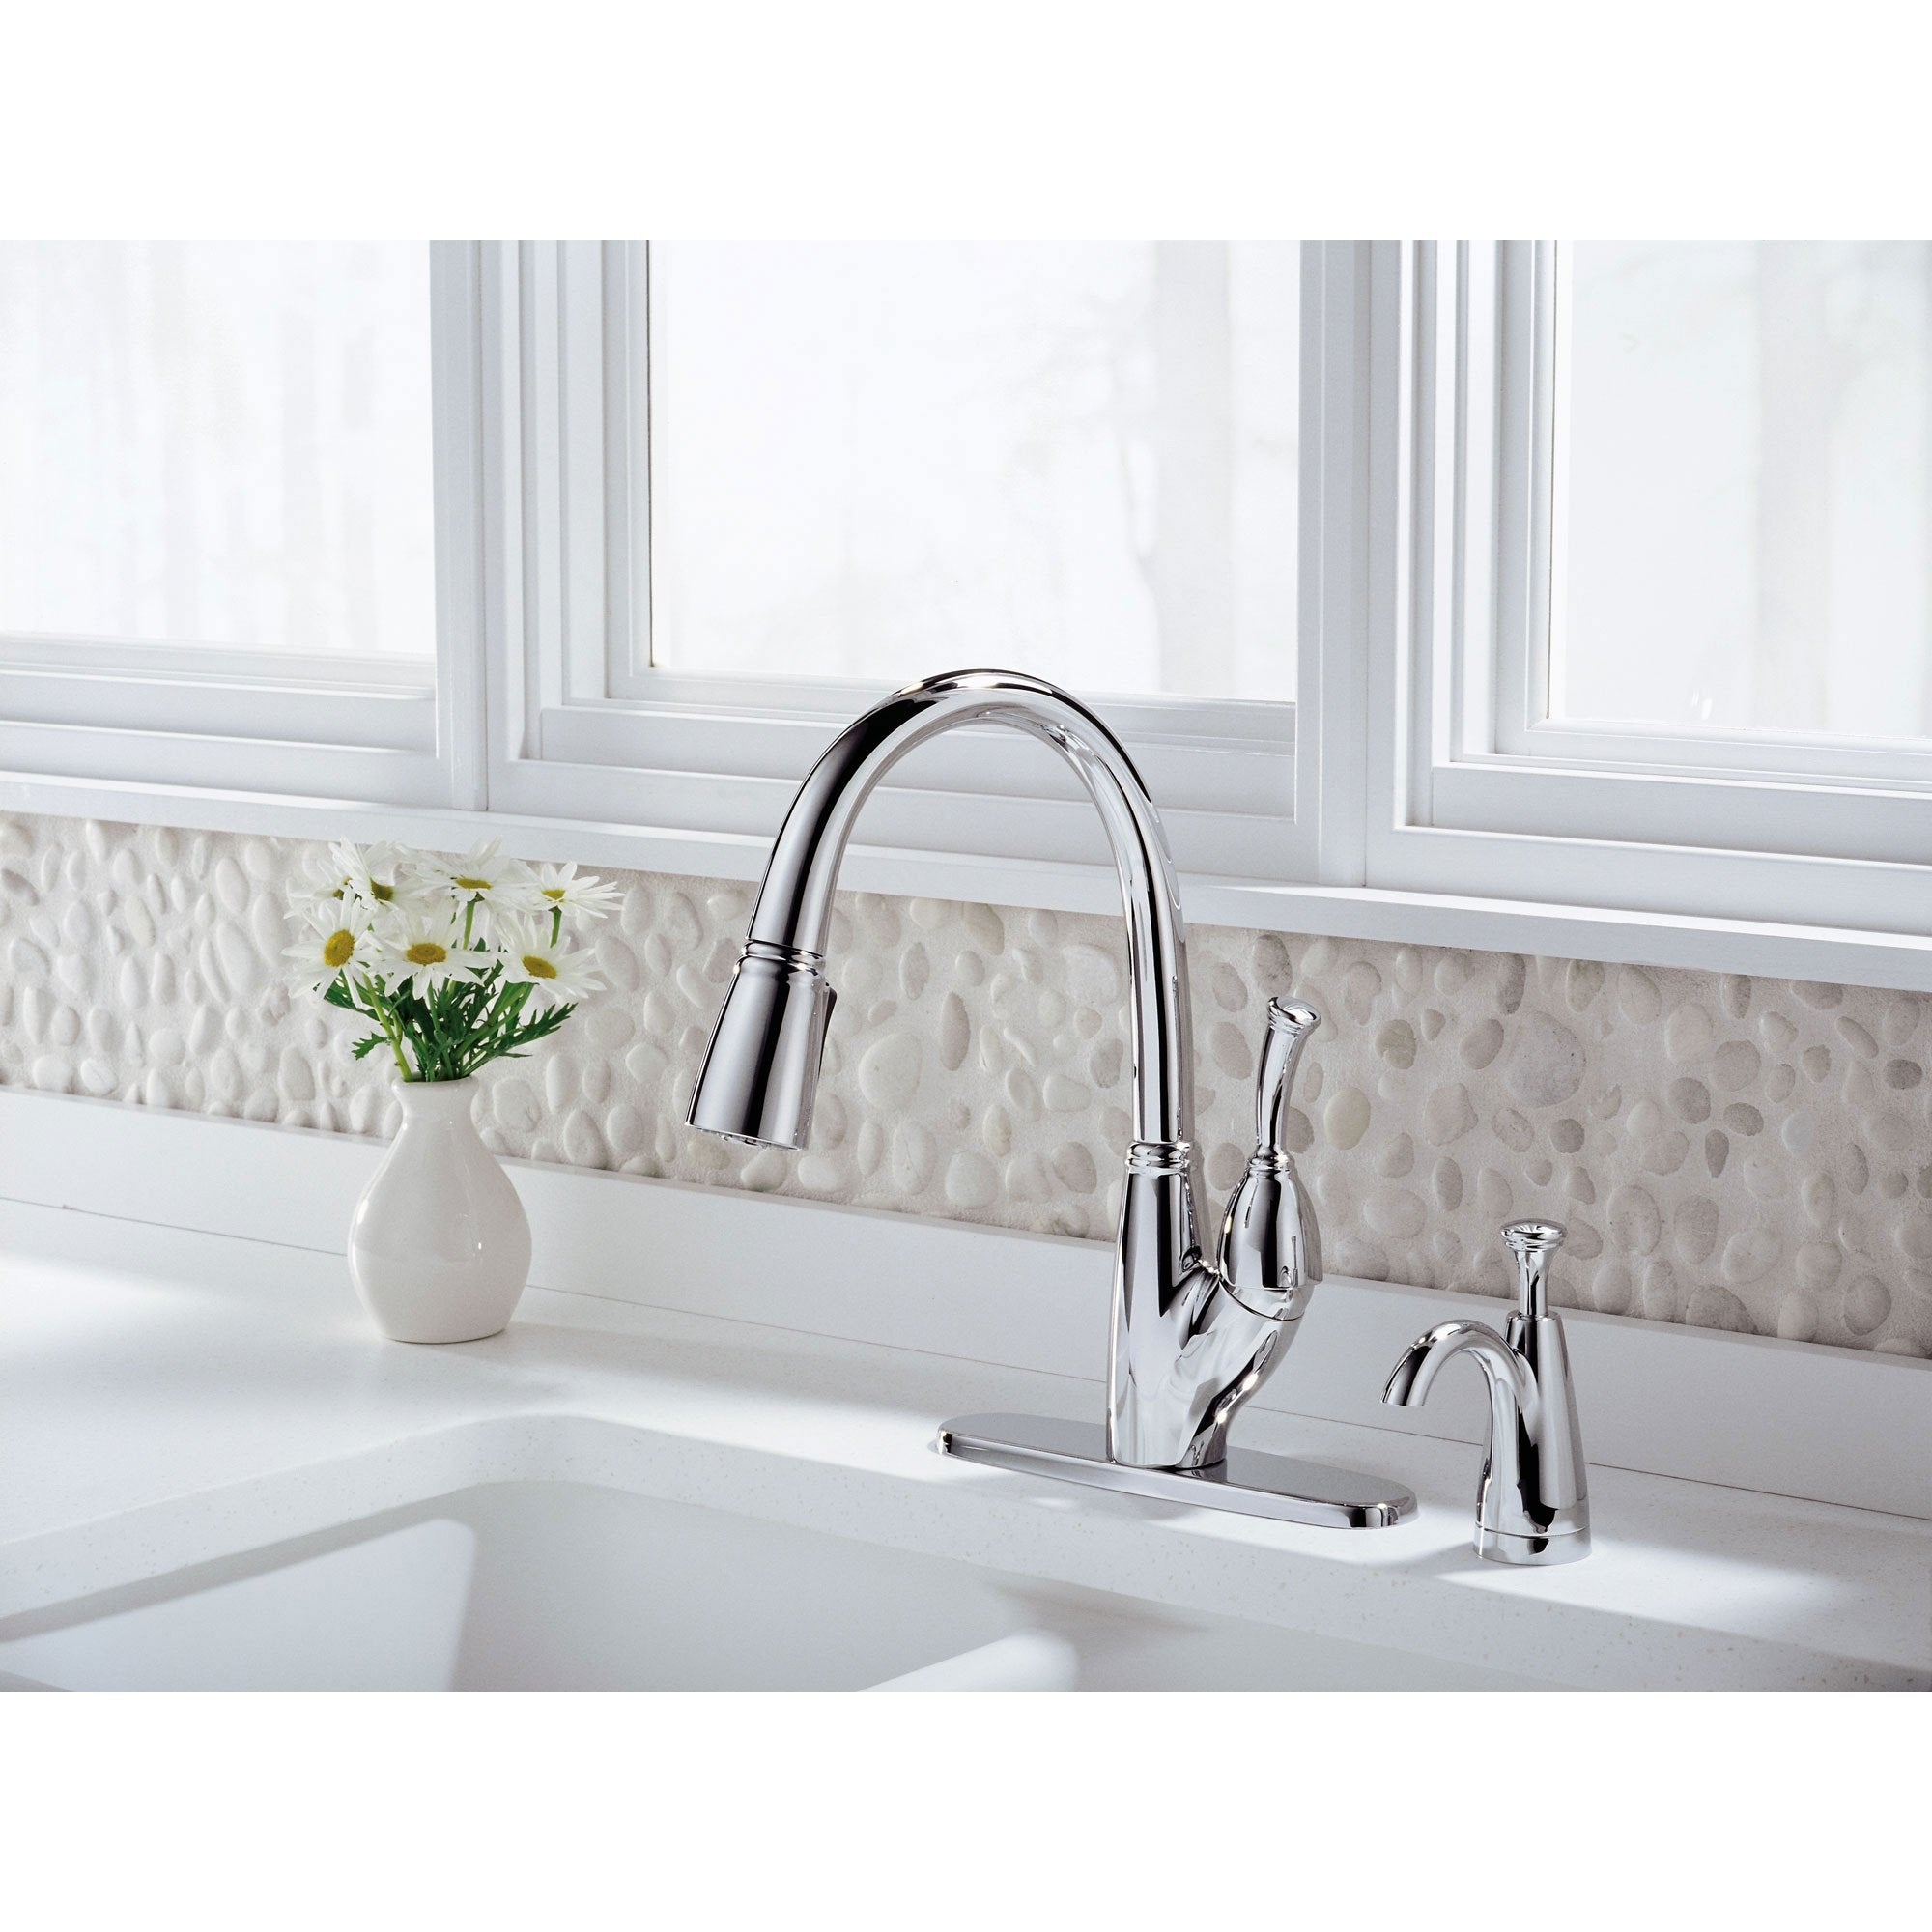 Delta Chrome Finish Allora Collection Single Handle Pull Down Kitchen Sink Faucet and Soap Dispenser Package D036CR